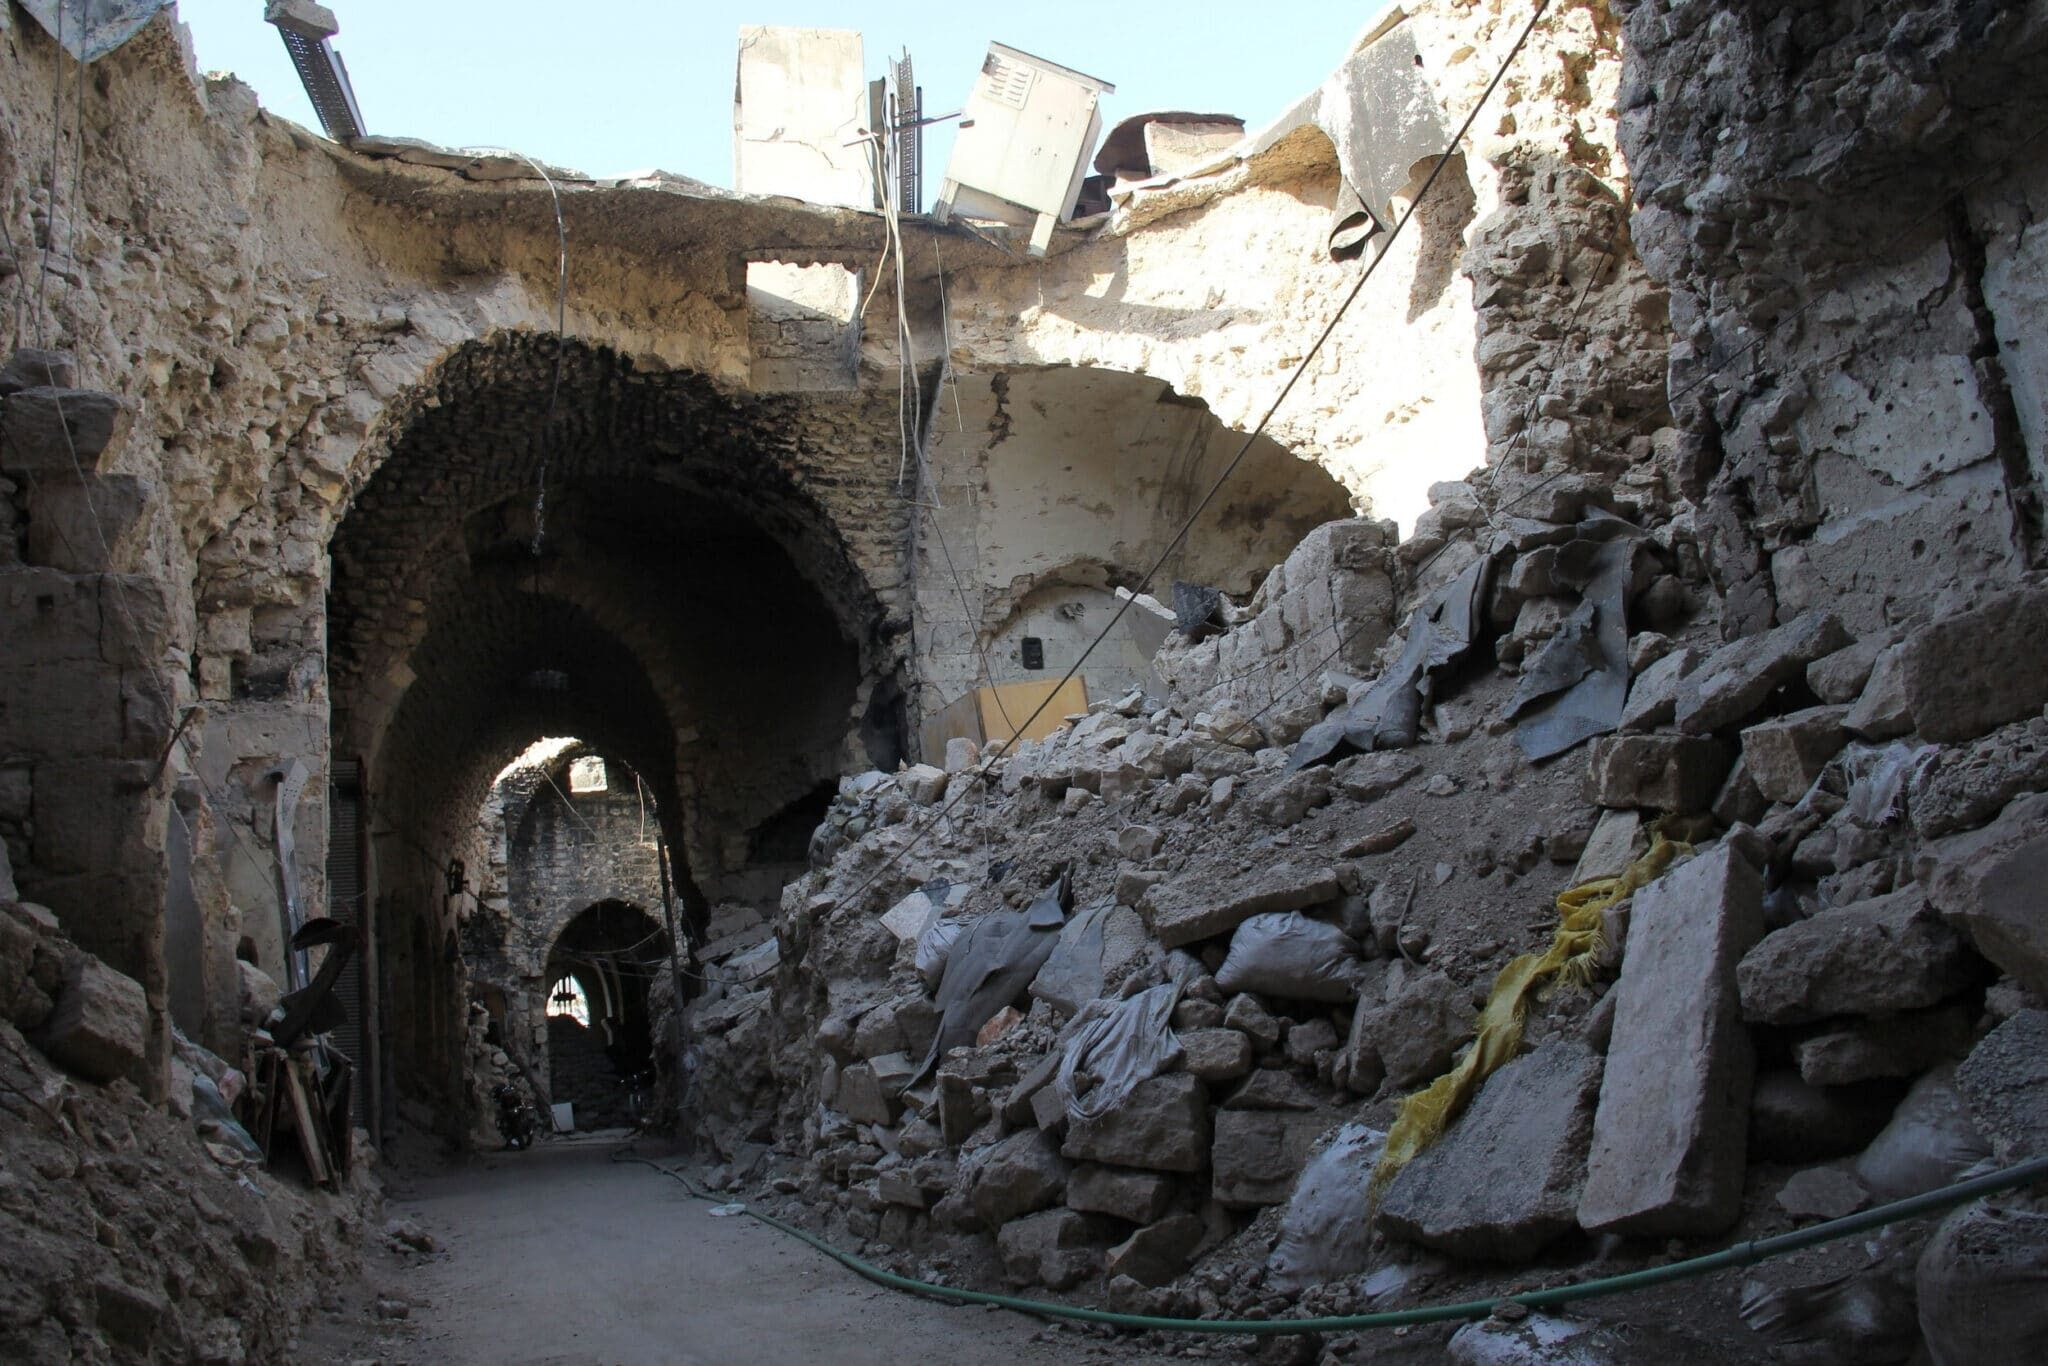 Syria's Cultural Heritage - Many historical places destroyed during Syrian civil war